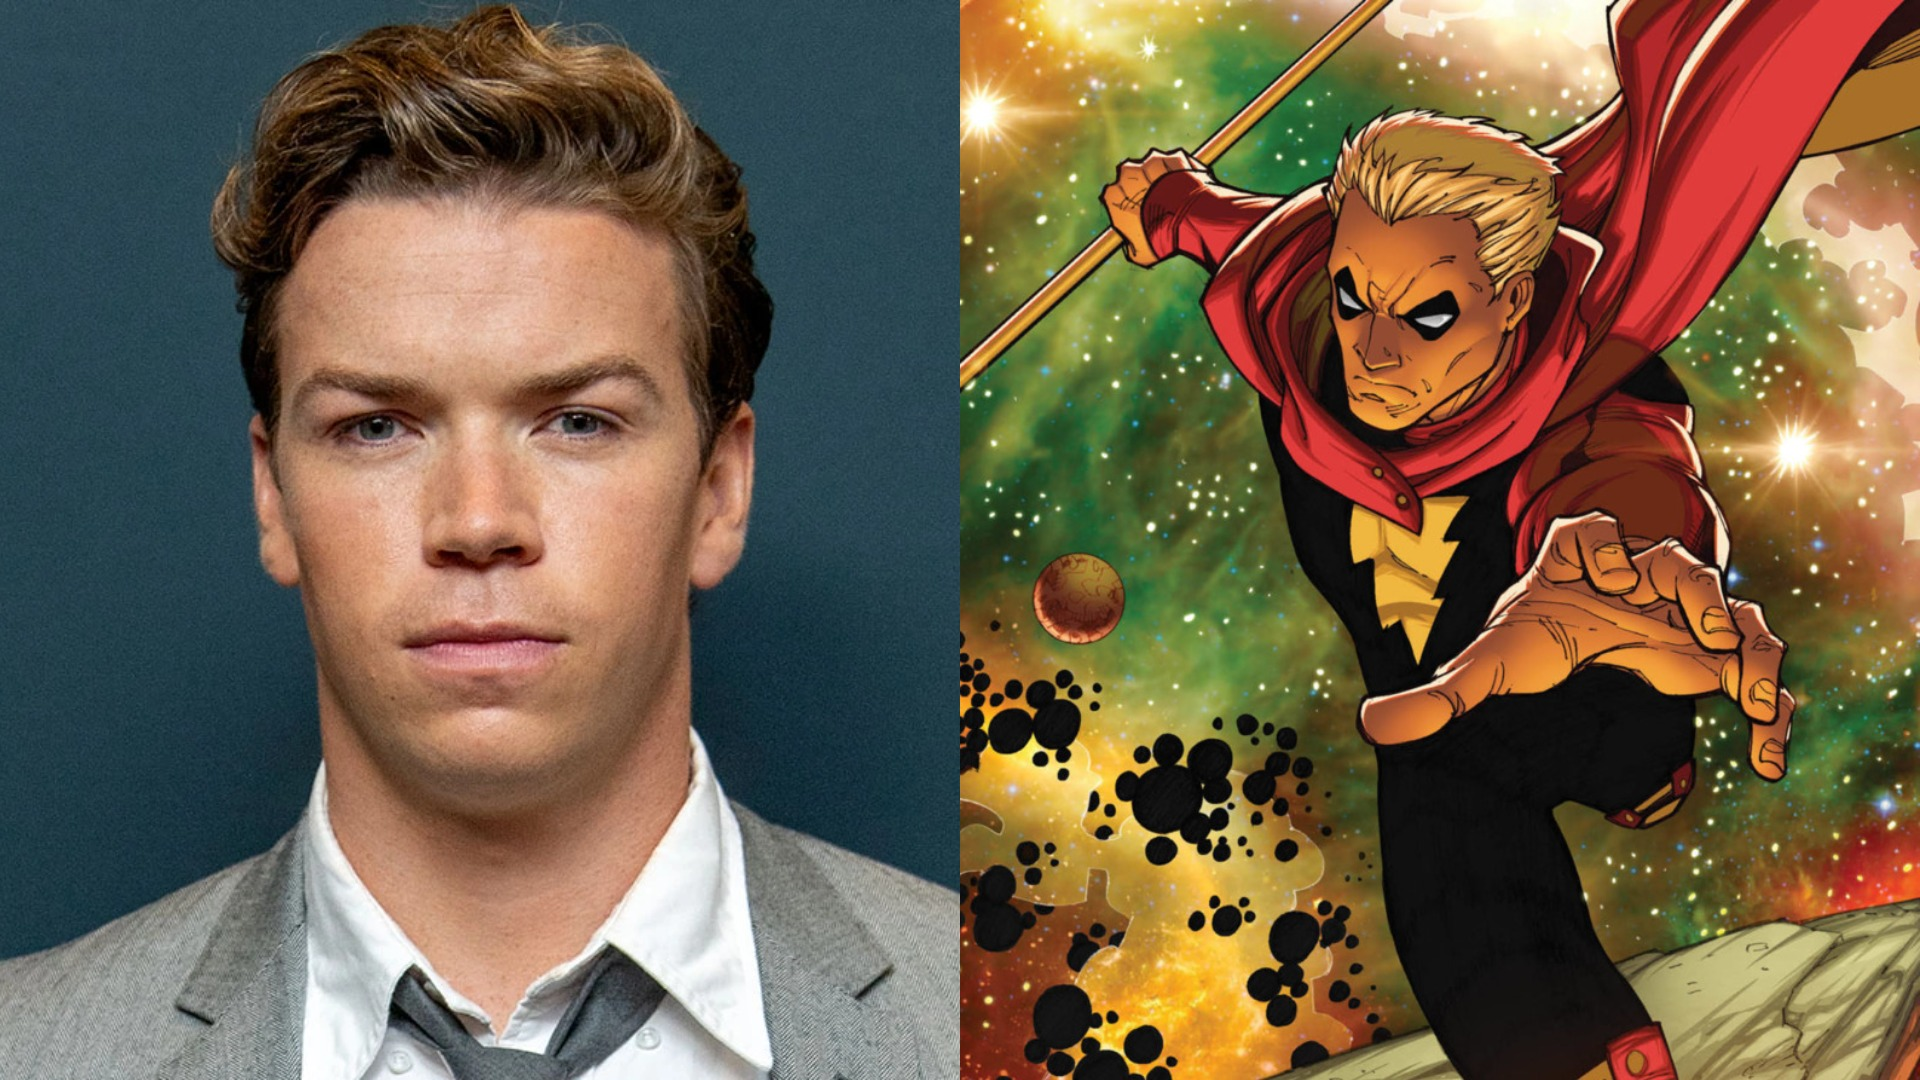 Deadline is exclusively reporting that Will Poulter will be joining the Marvel Cinematic Universe as he has signed up to play the role of Adam Warlock in Guardians of the Galaxy Vol. 3.